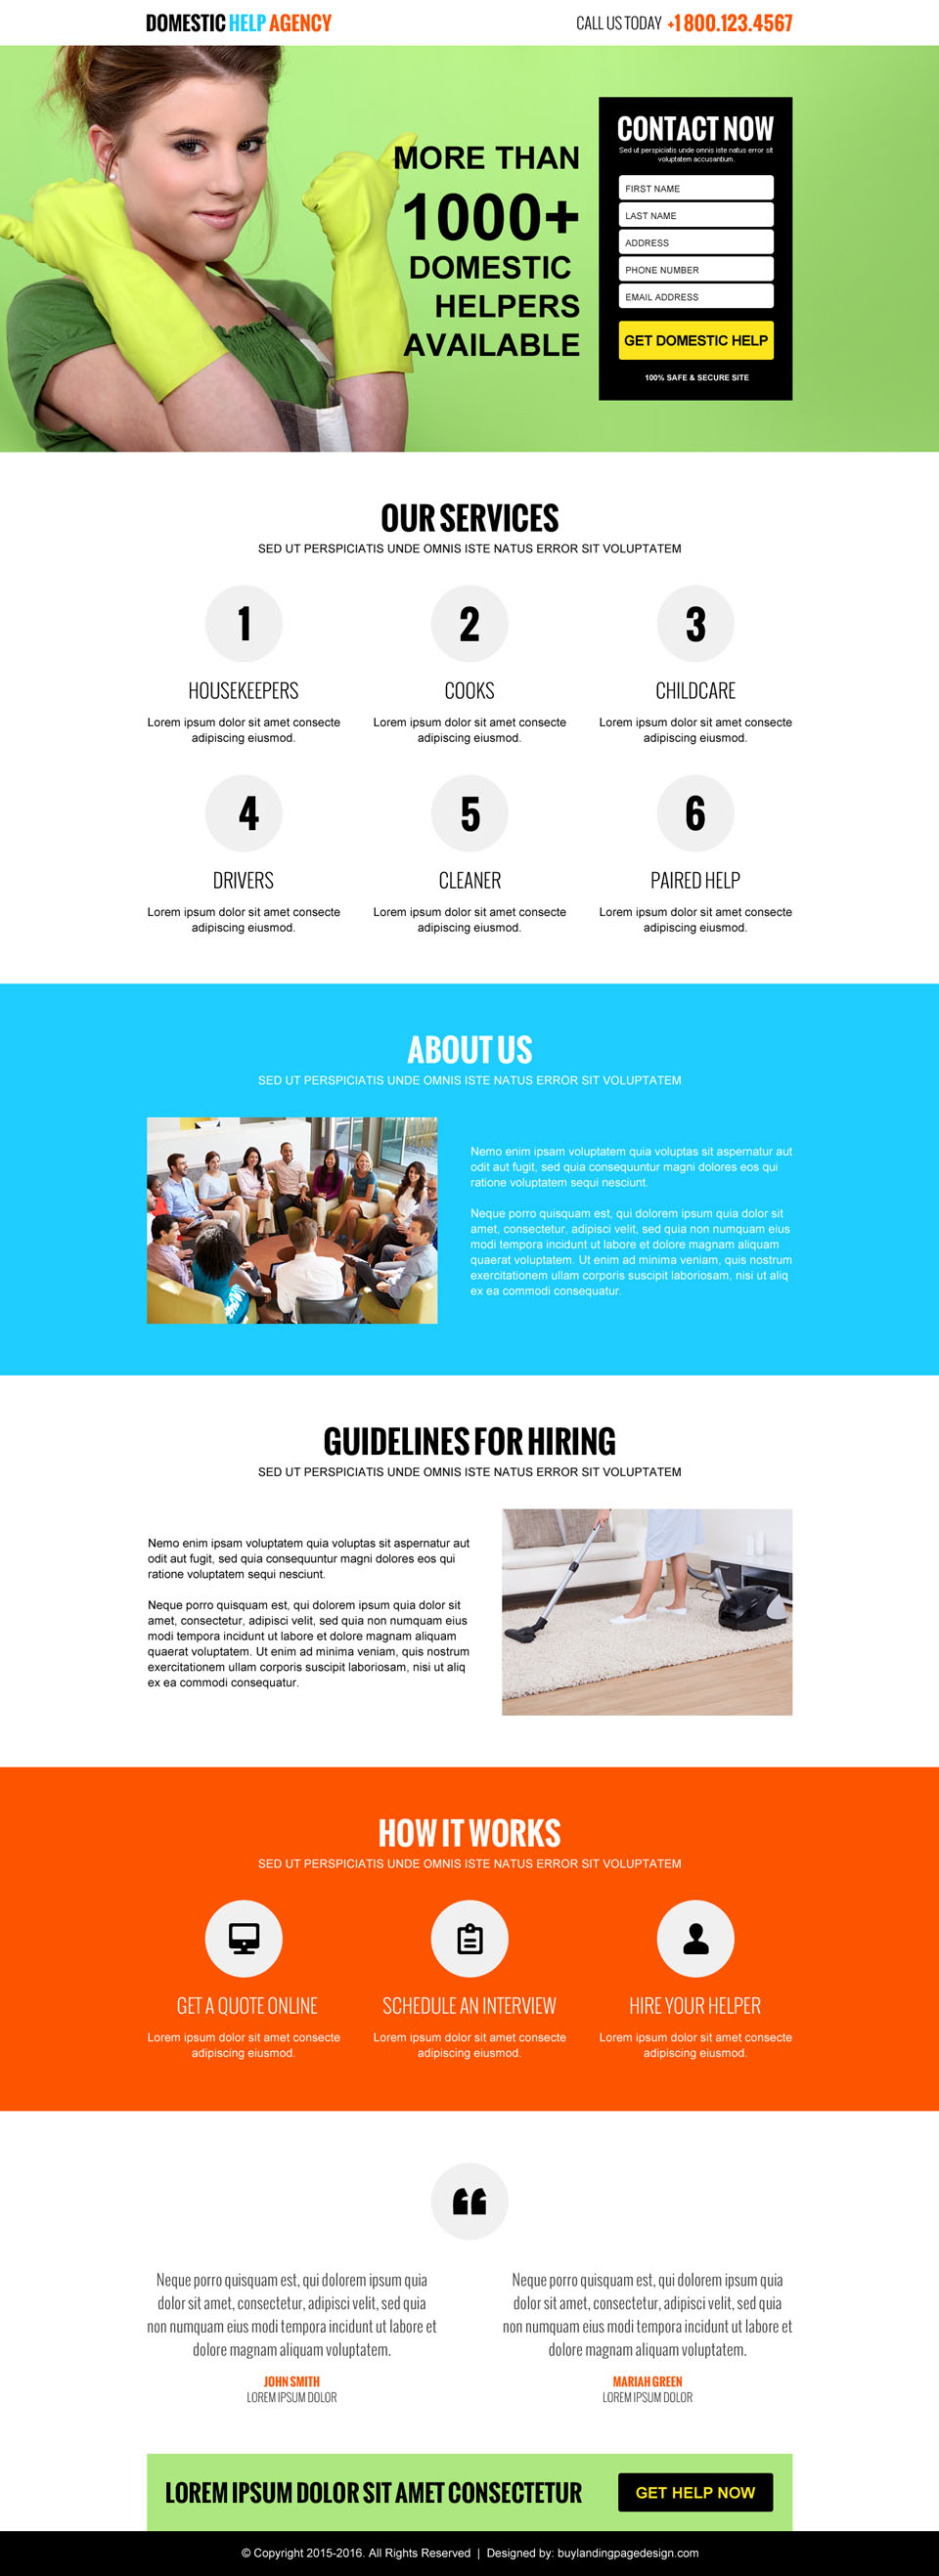 domestic-help-agency-lead-capture-landing-page-design-template-001